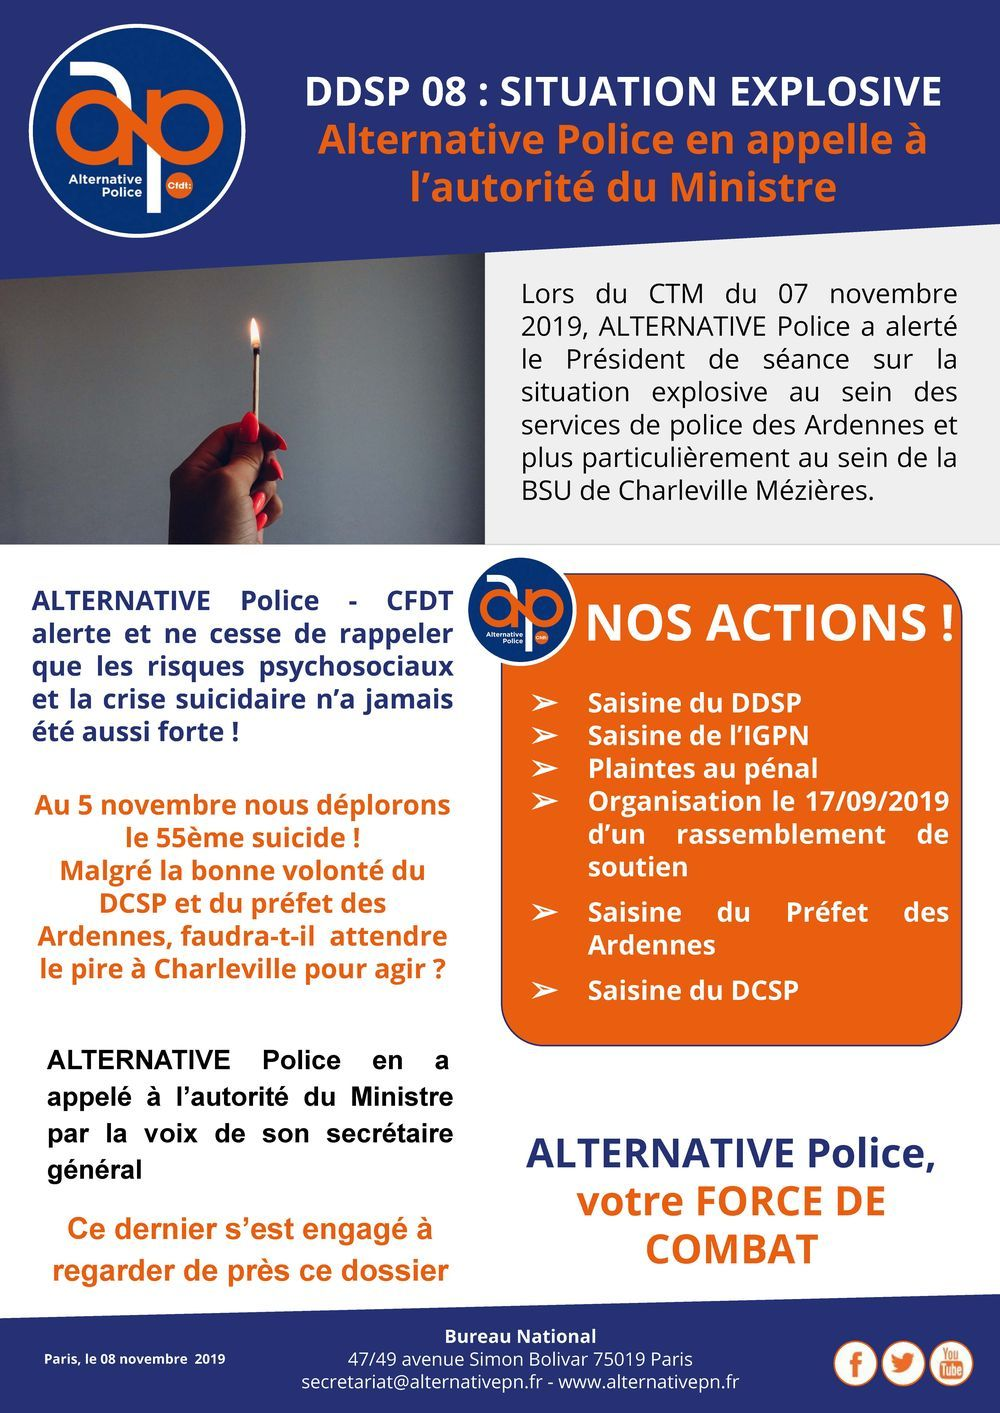 DDSP 08 : Une situation explosive !